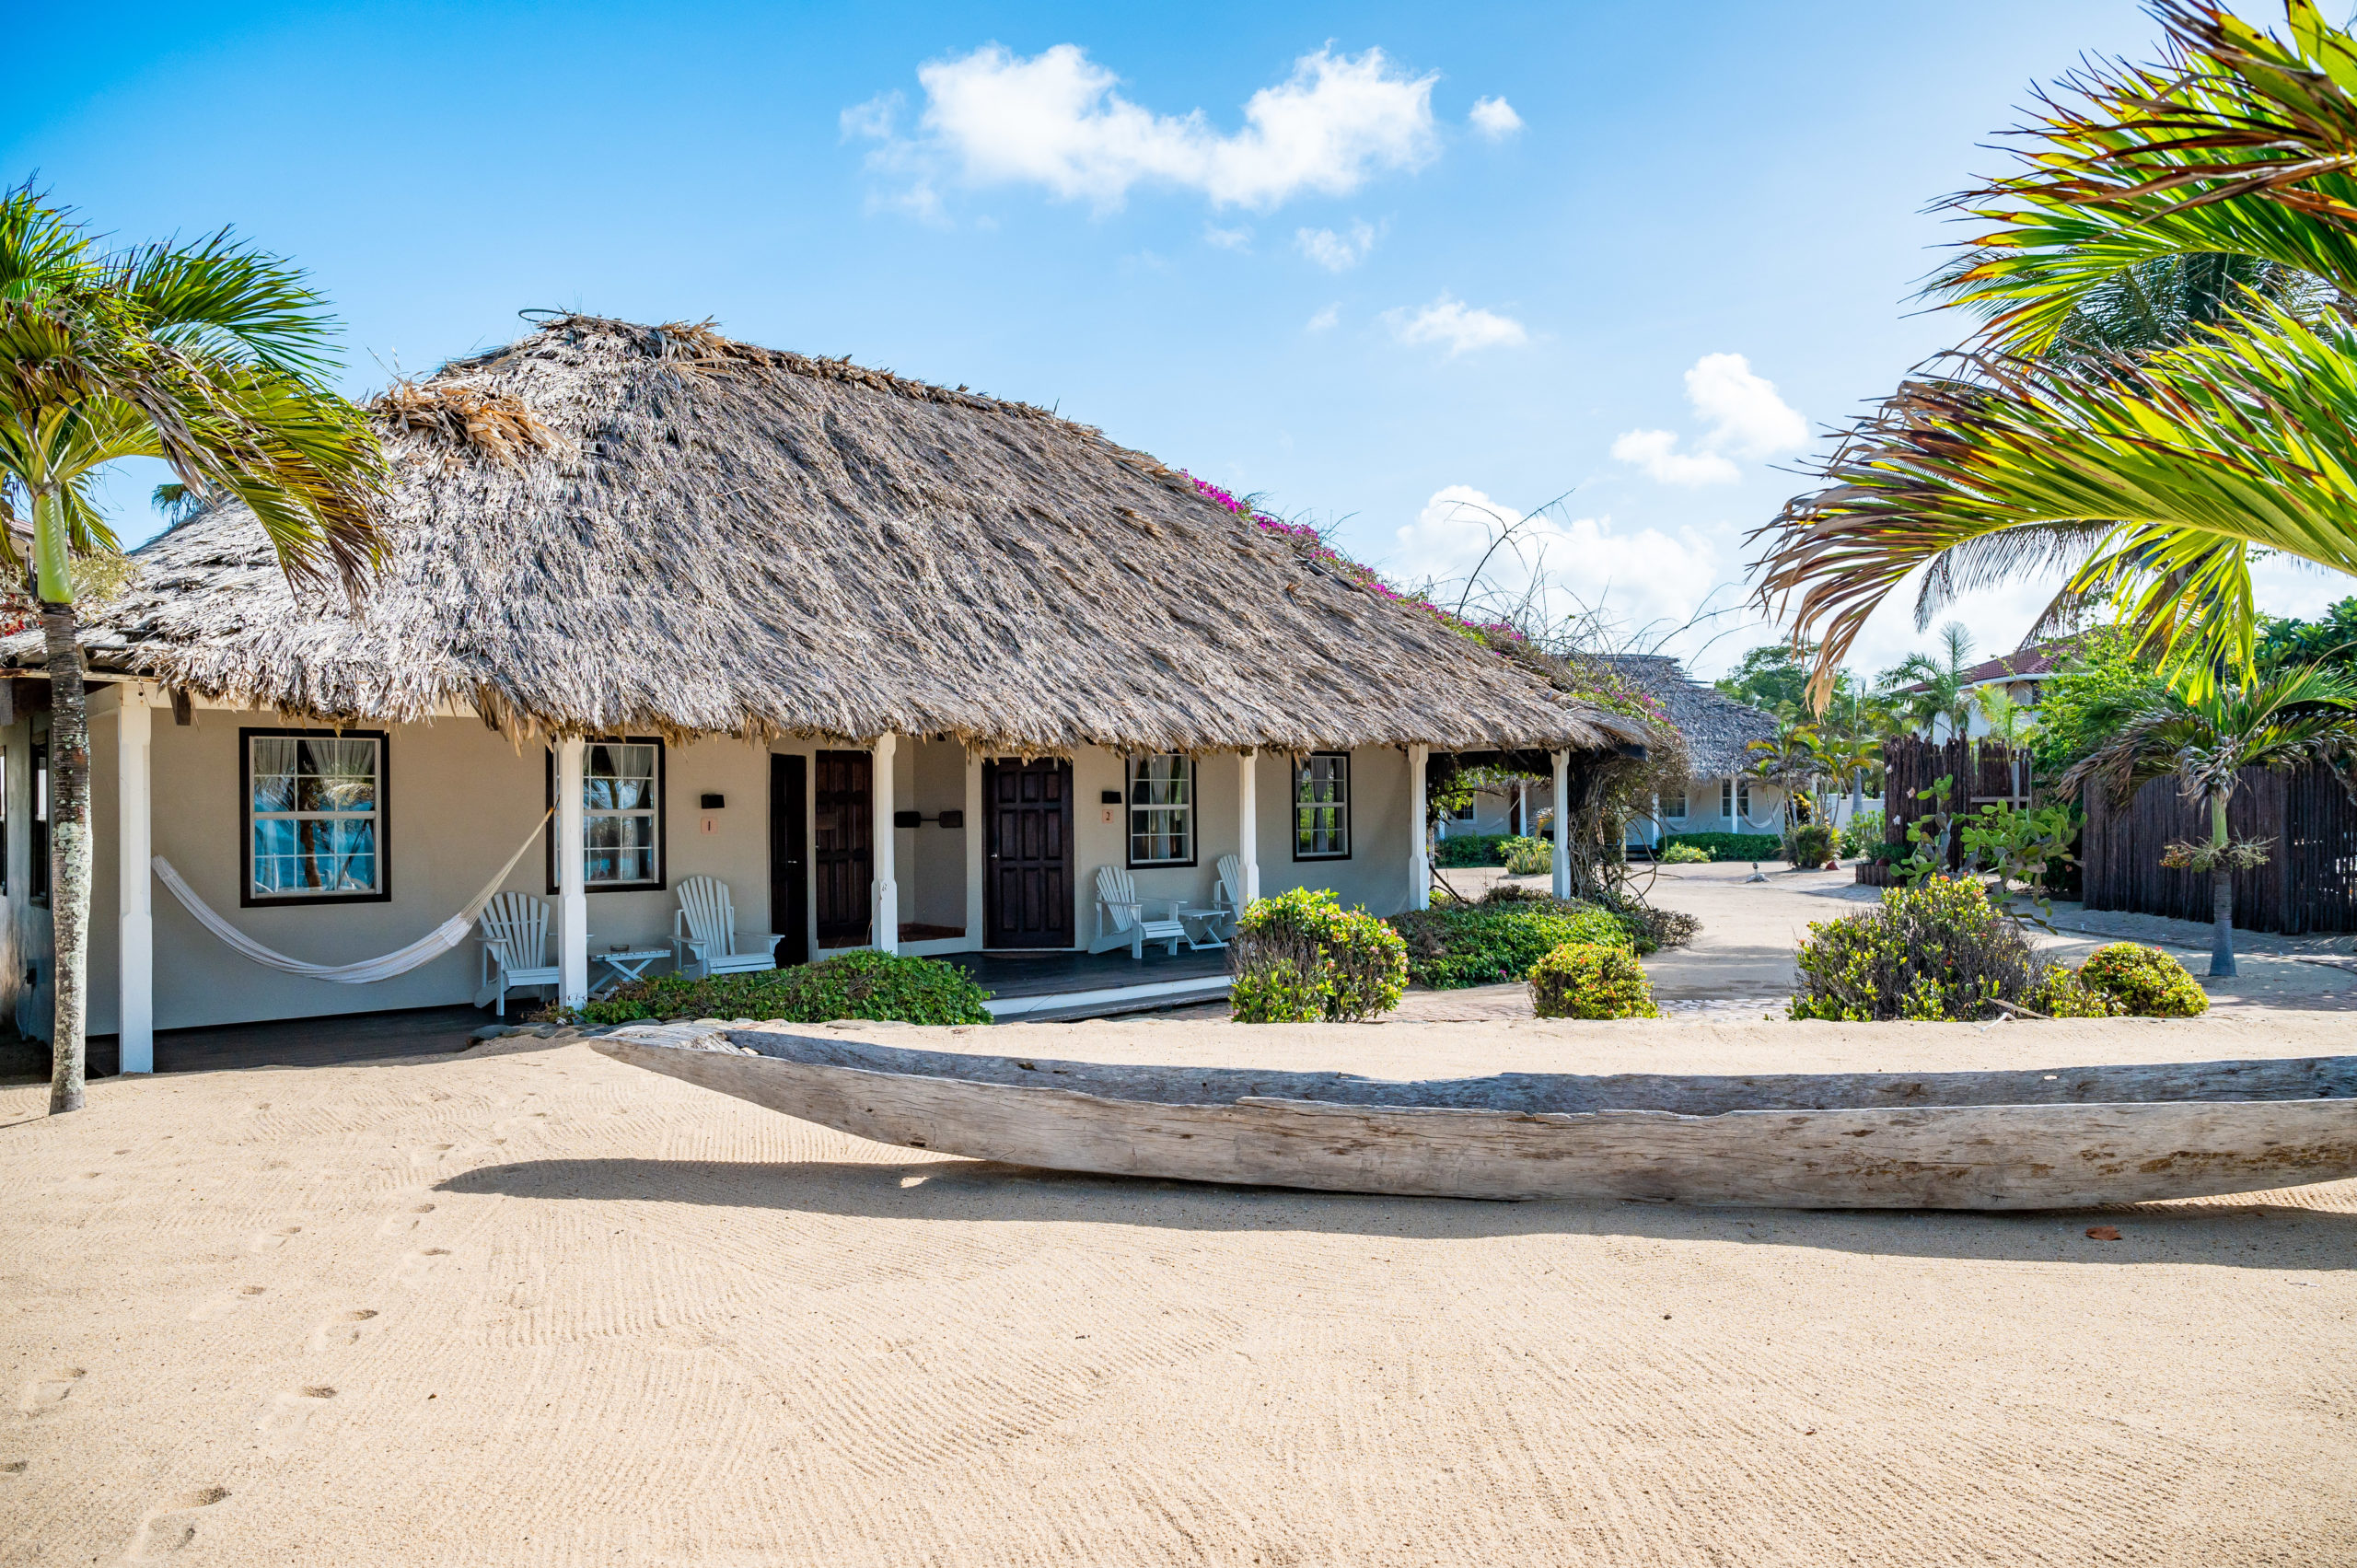 The sandy beachfront grounds keep the Belizean shore top of mind.